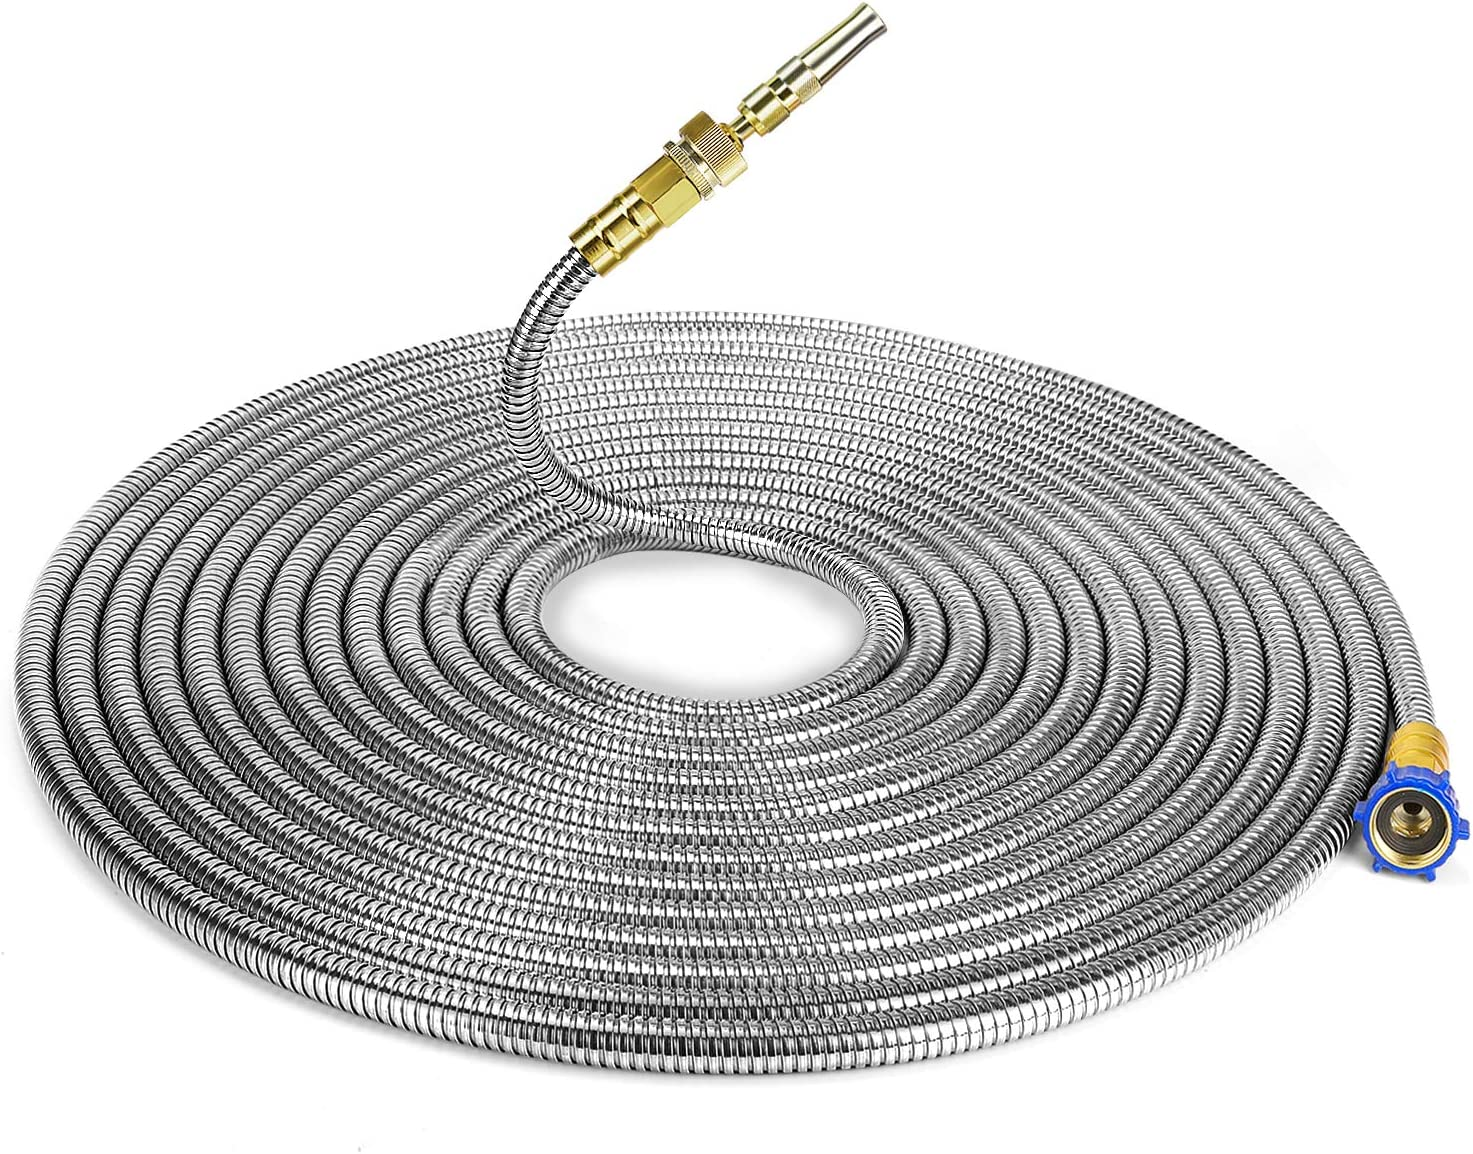 teamoonmy 304 Stainless Steel Metal Garden Hose-Water Hose with Solid Metal Portable & Lightweight Kink Free-25FT outdoor hose